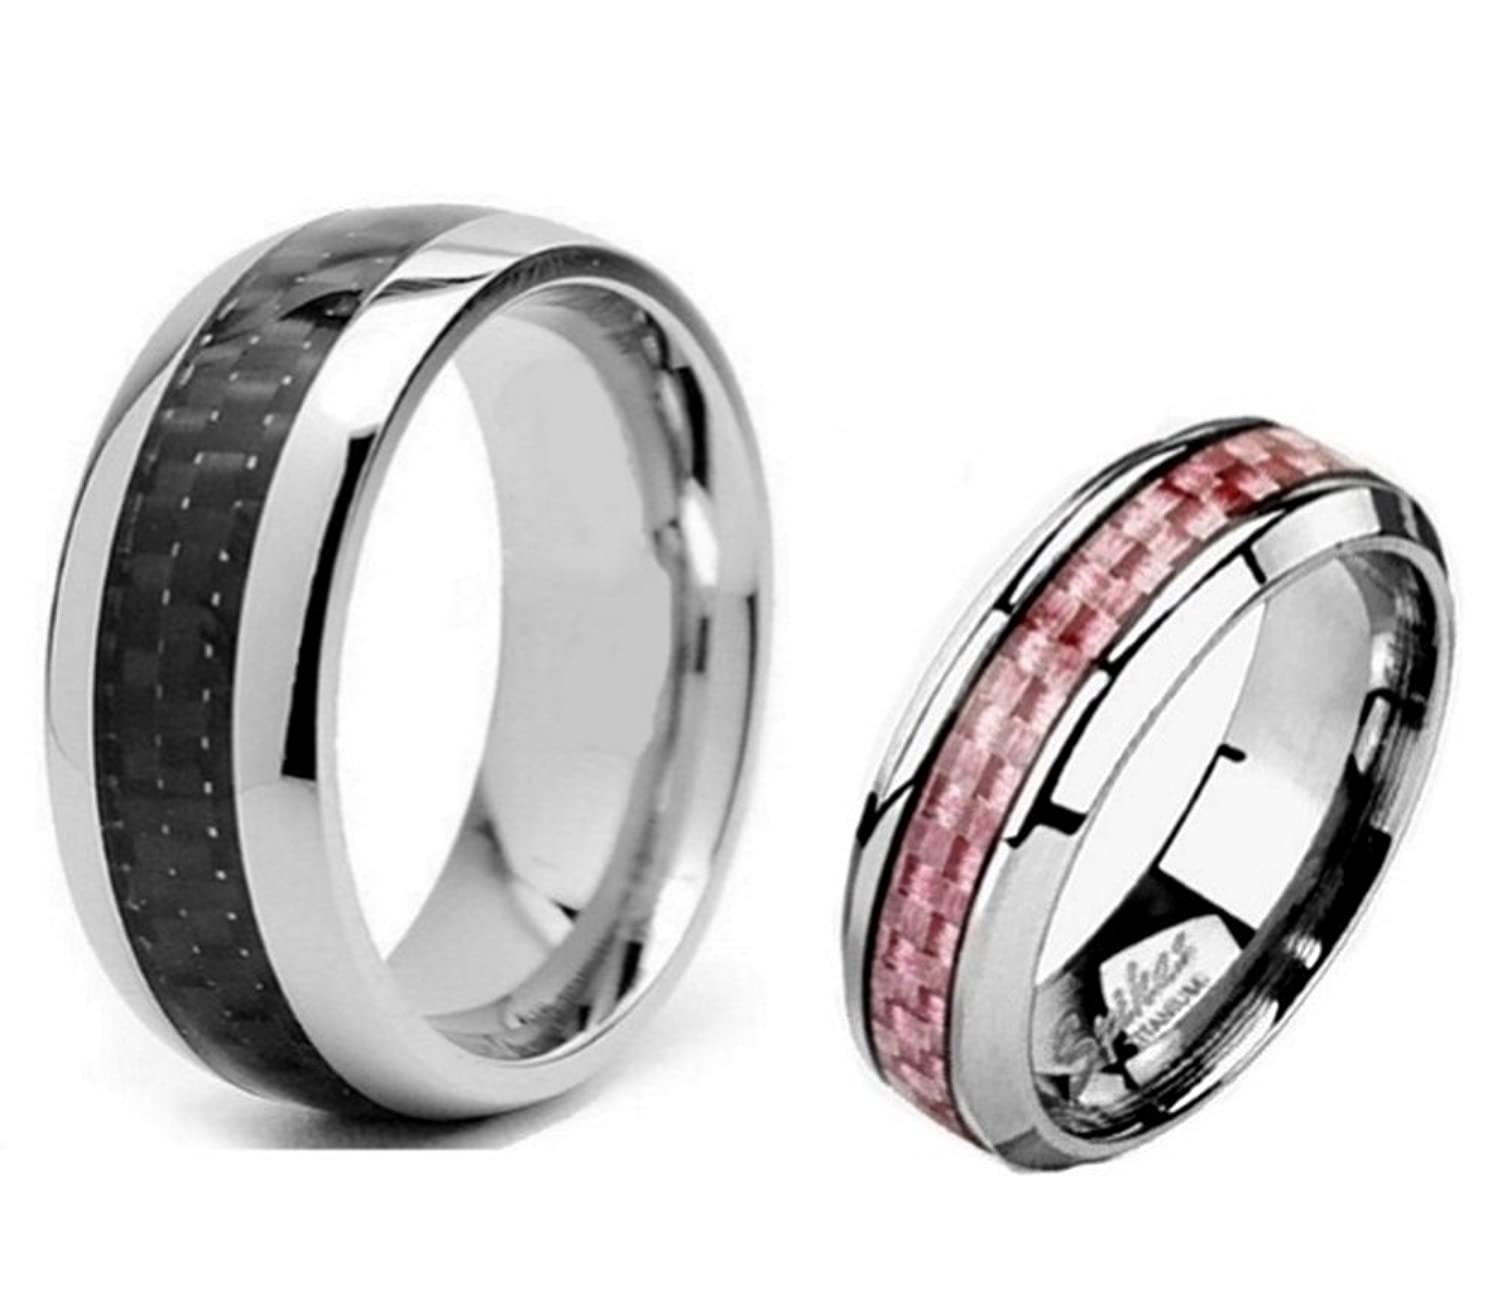 2 pc his hers titanium carbon fiber wedding band ring set sizes 5 thru 9 pink 9 thru 13 black amazoncom - Black And Pink Wedding Ring Sets